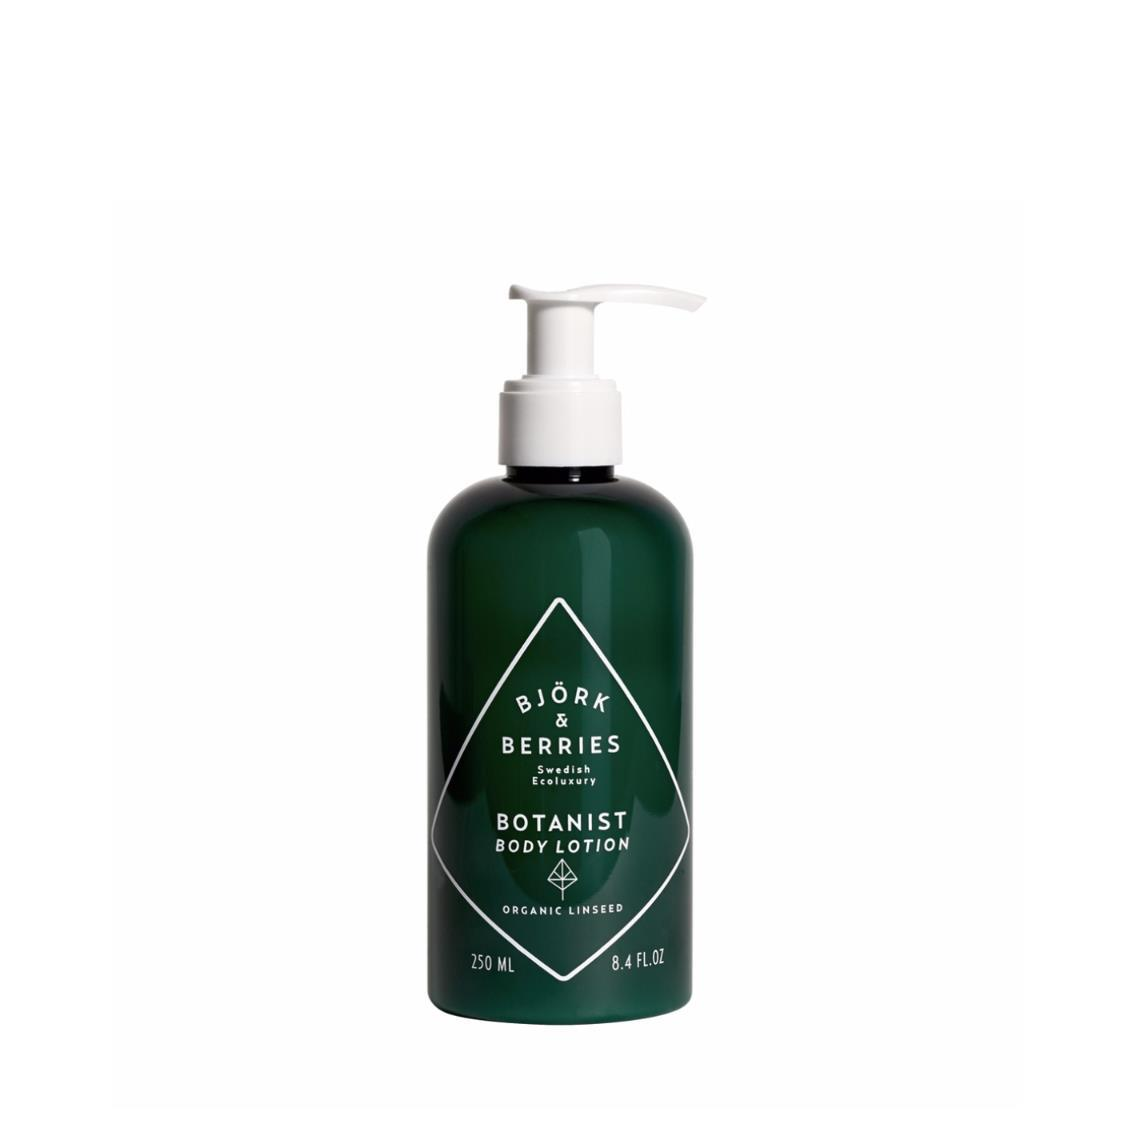 Botanist Body Lotion 250ml